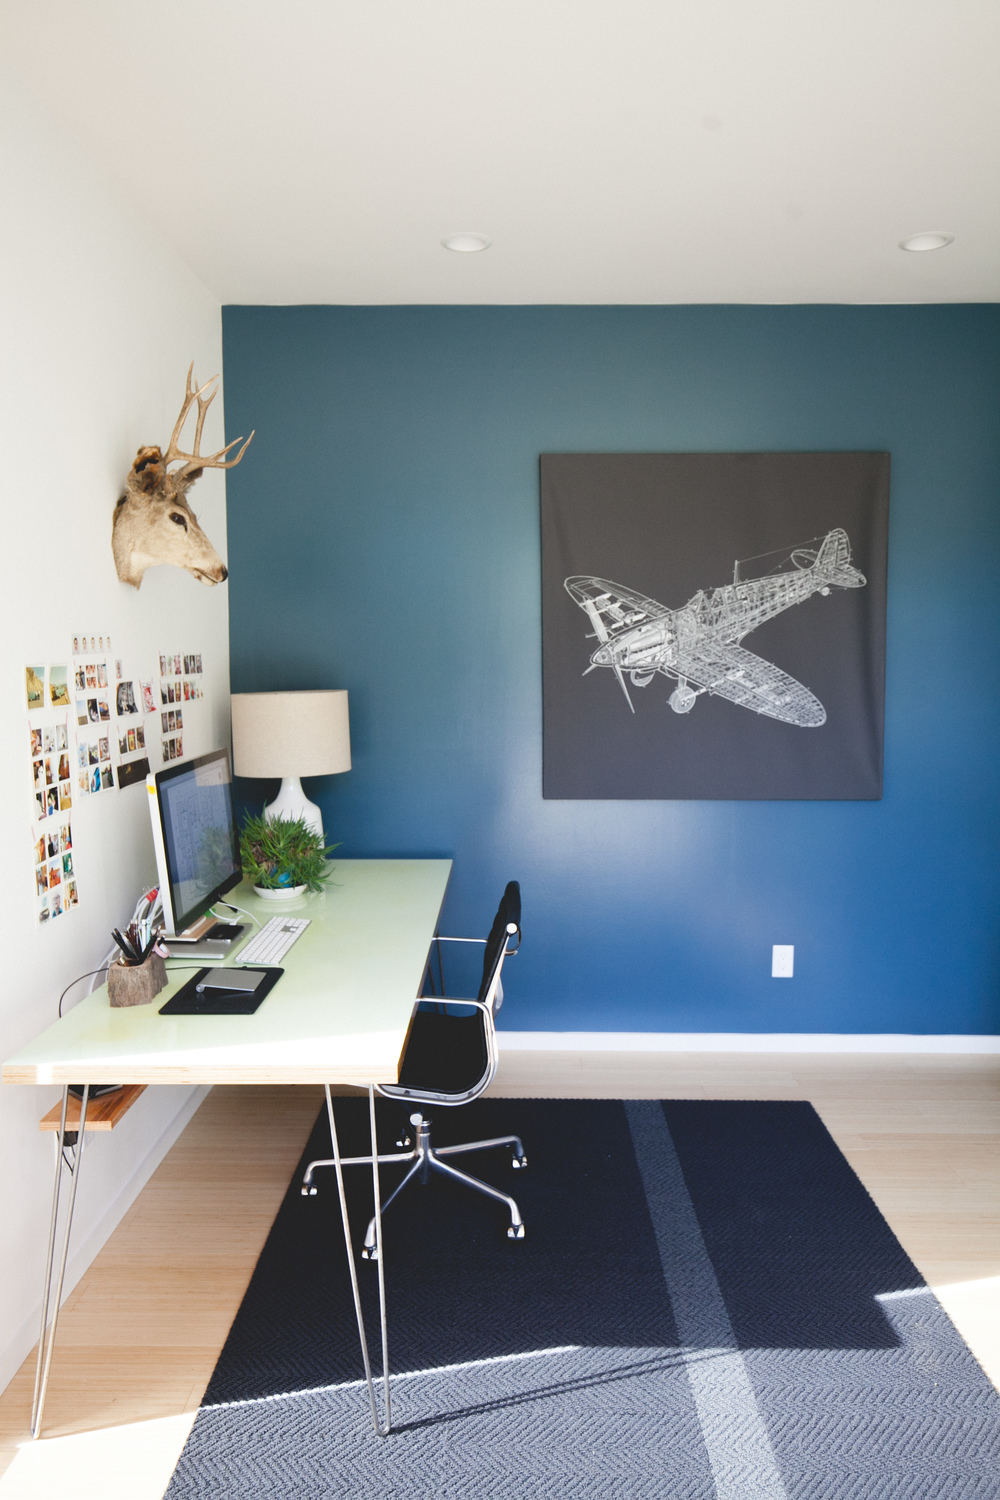 minimal modern pacific northwest home office design by the emerald studio, seattle wash